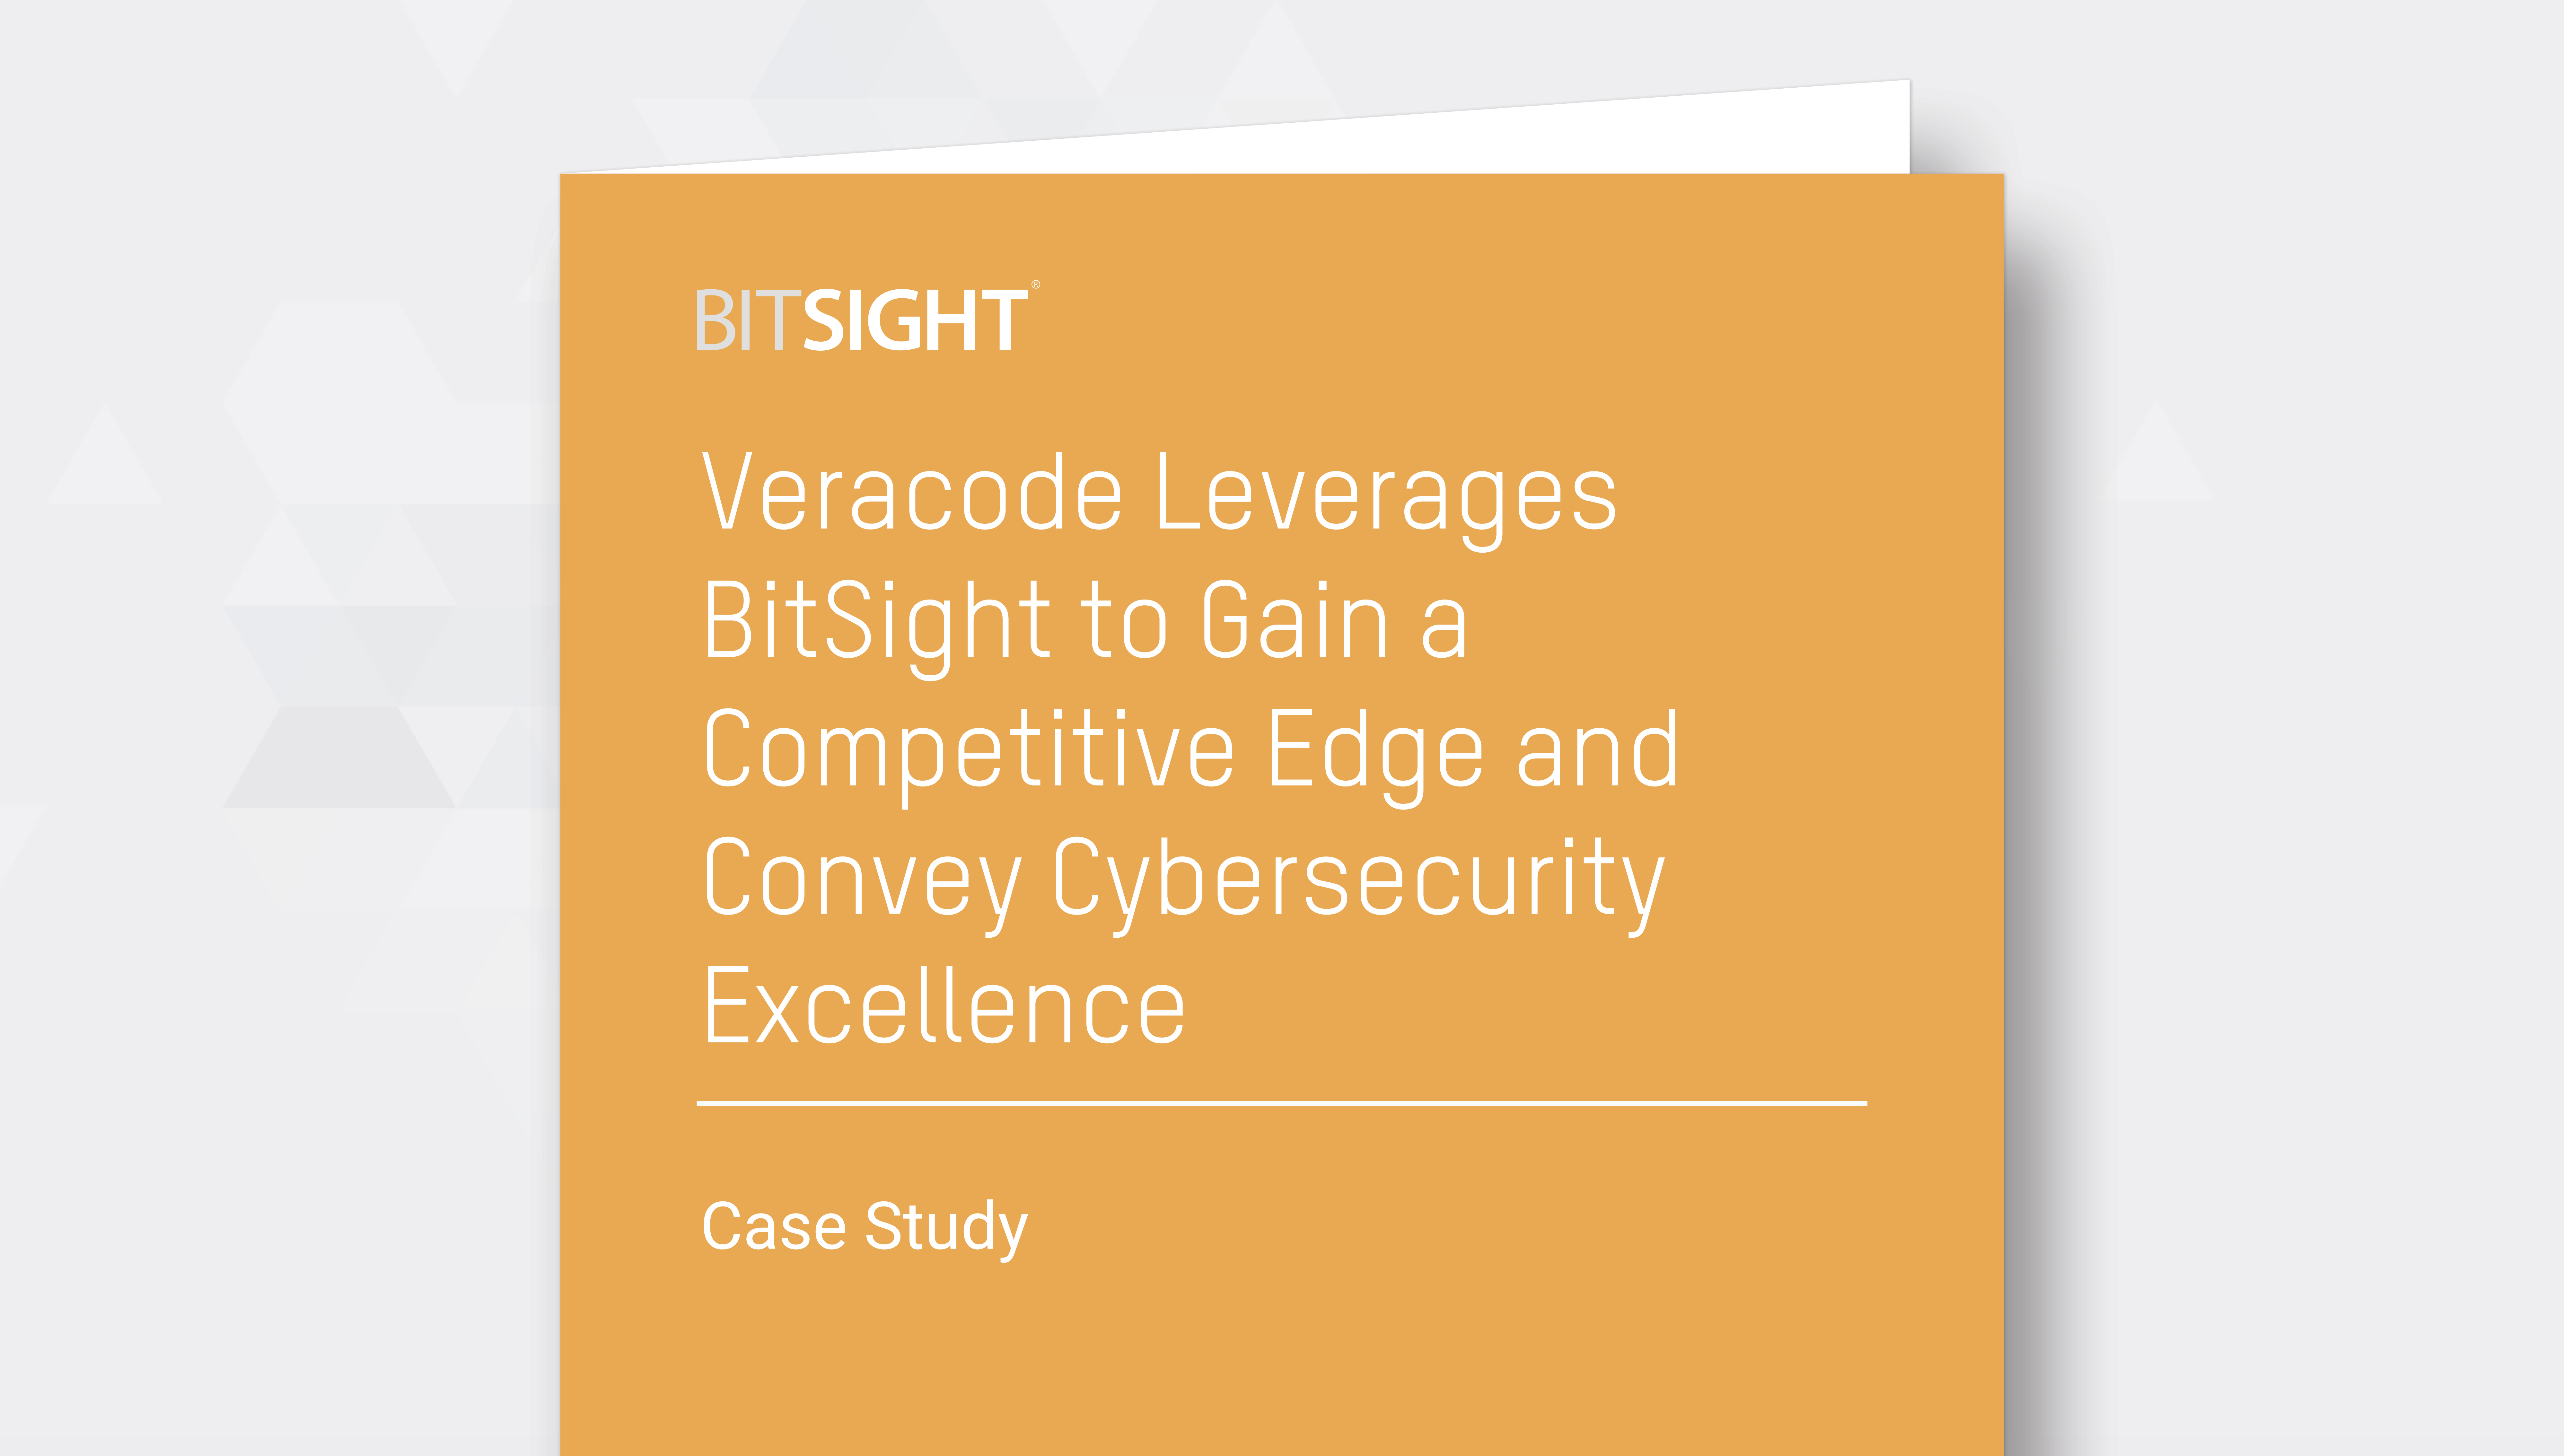 LP-Thumbnail-Veracode-CaseStudy.png